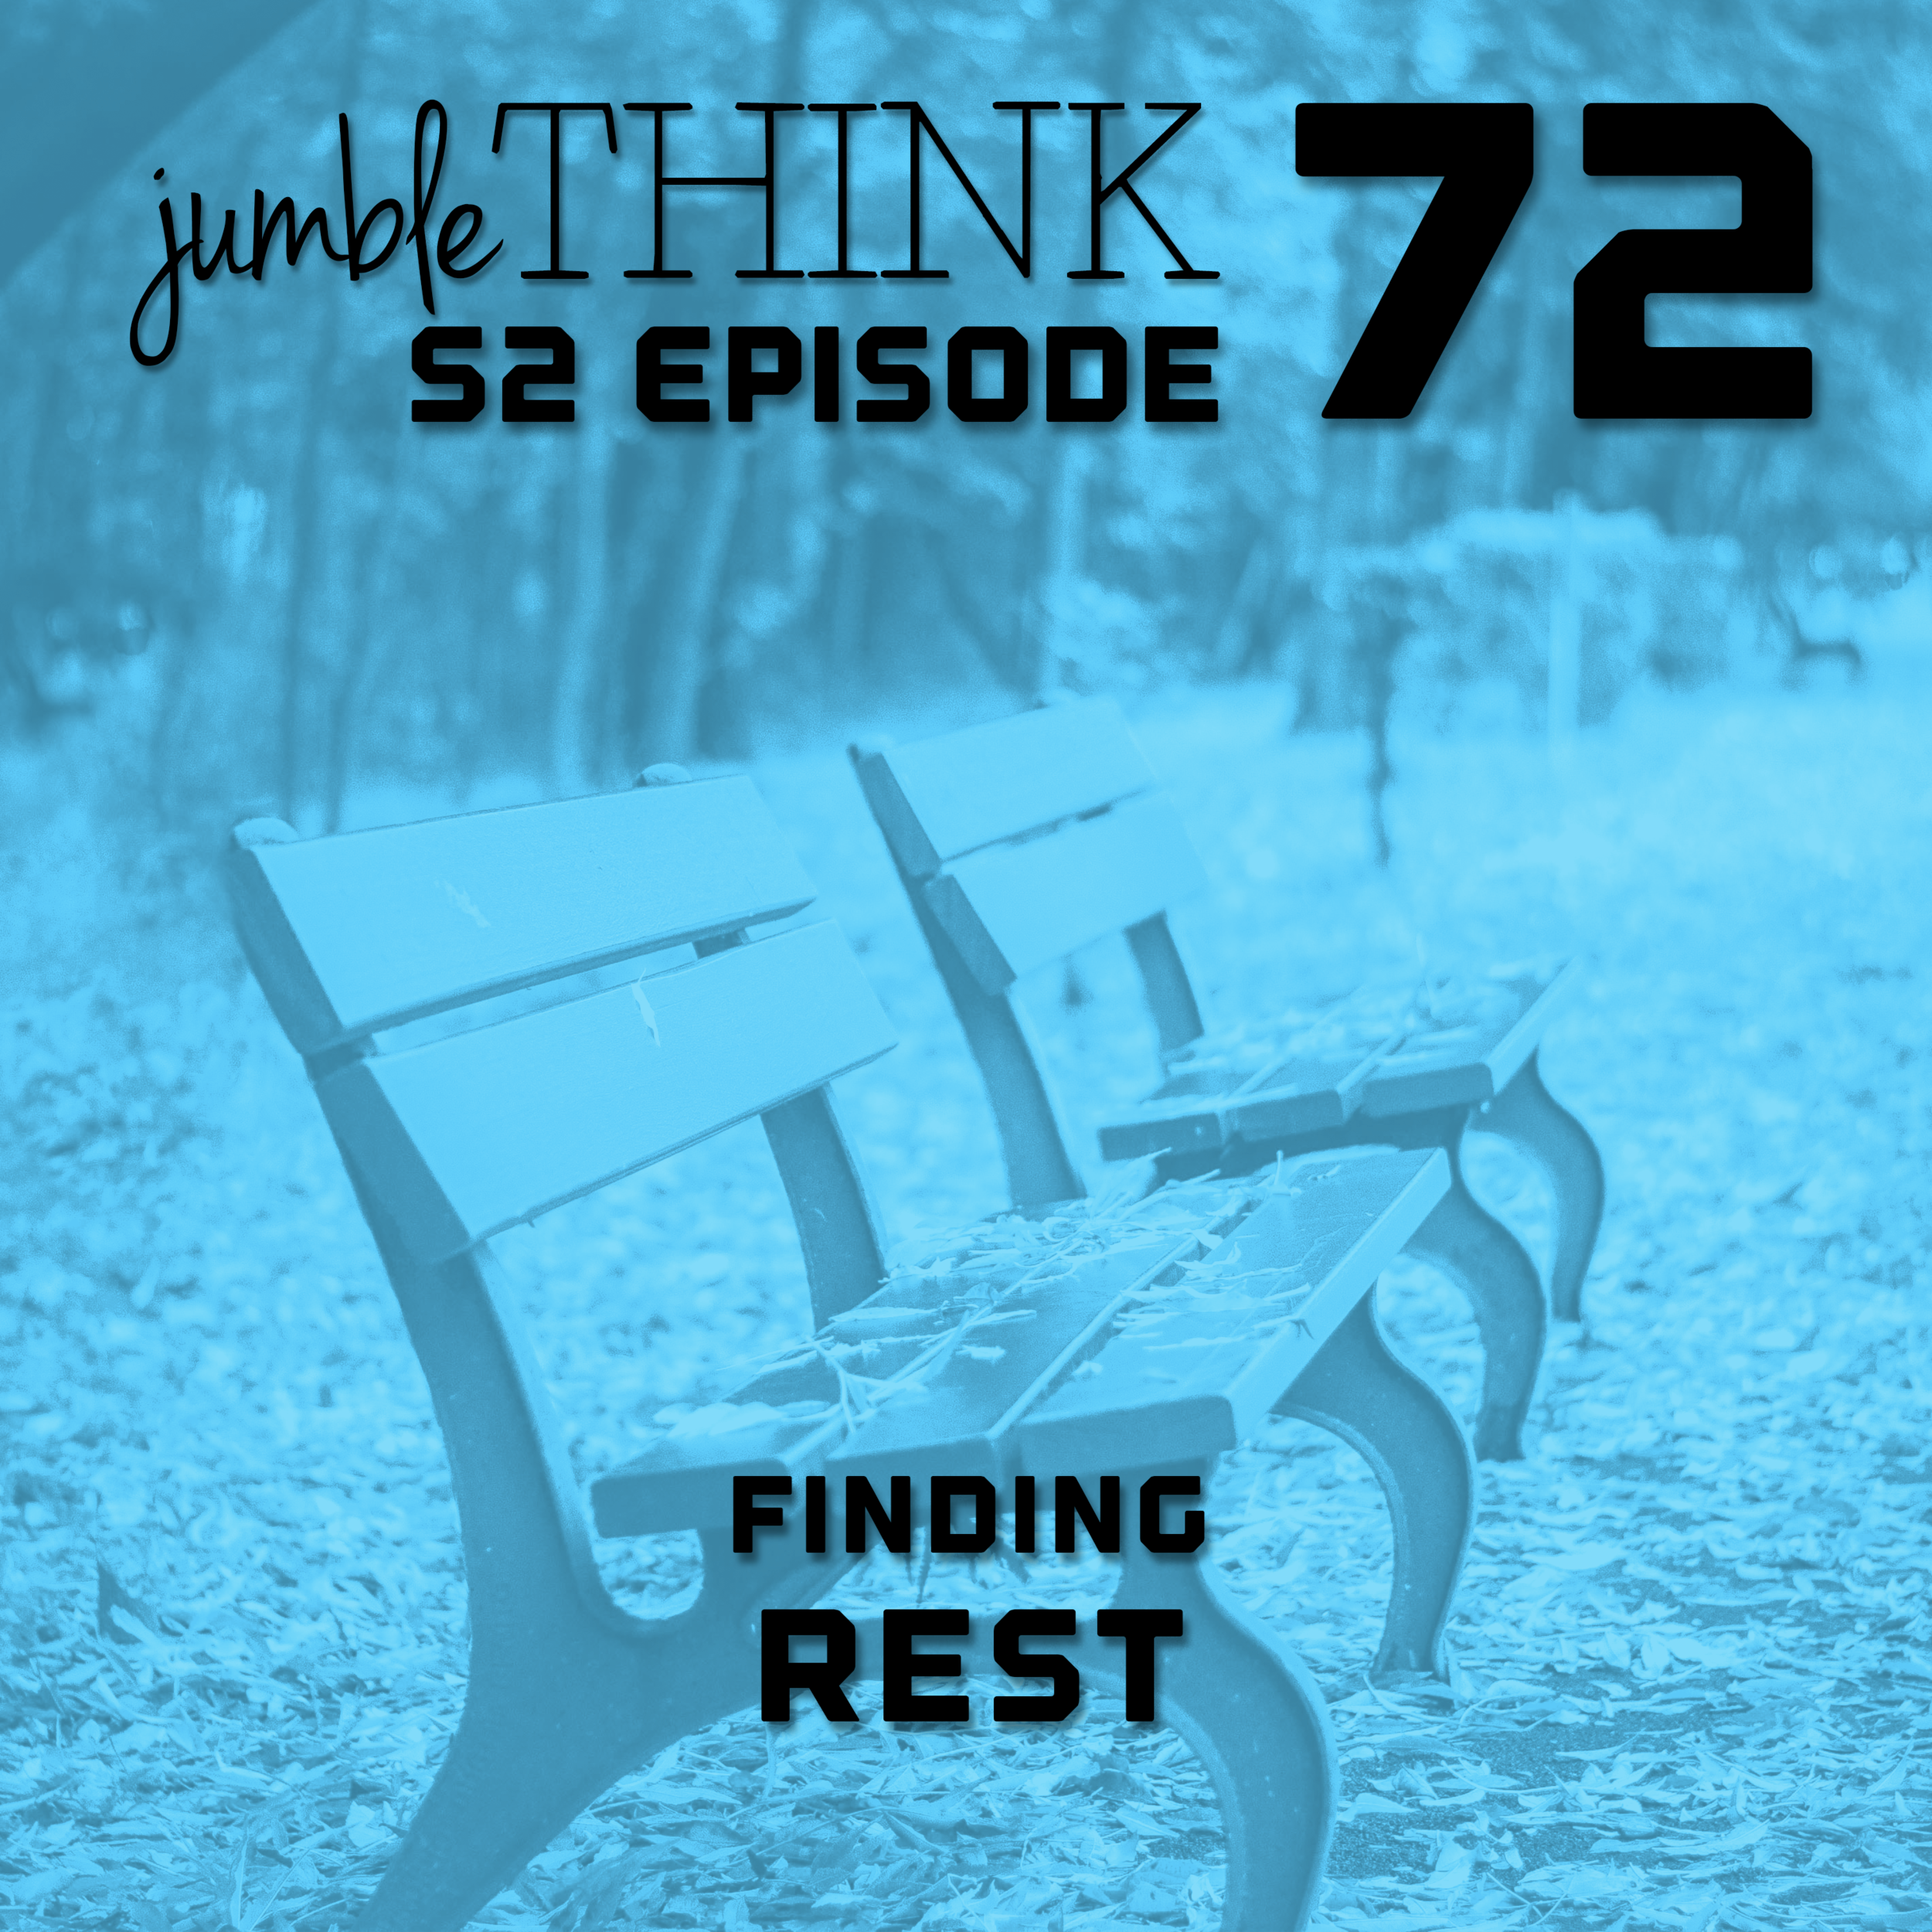 Finding Entrepreneurial Rest